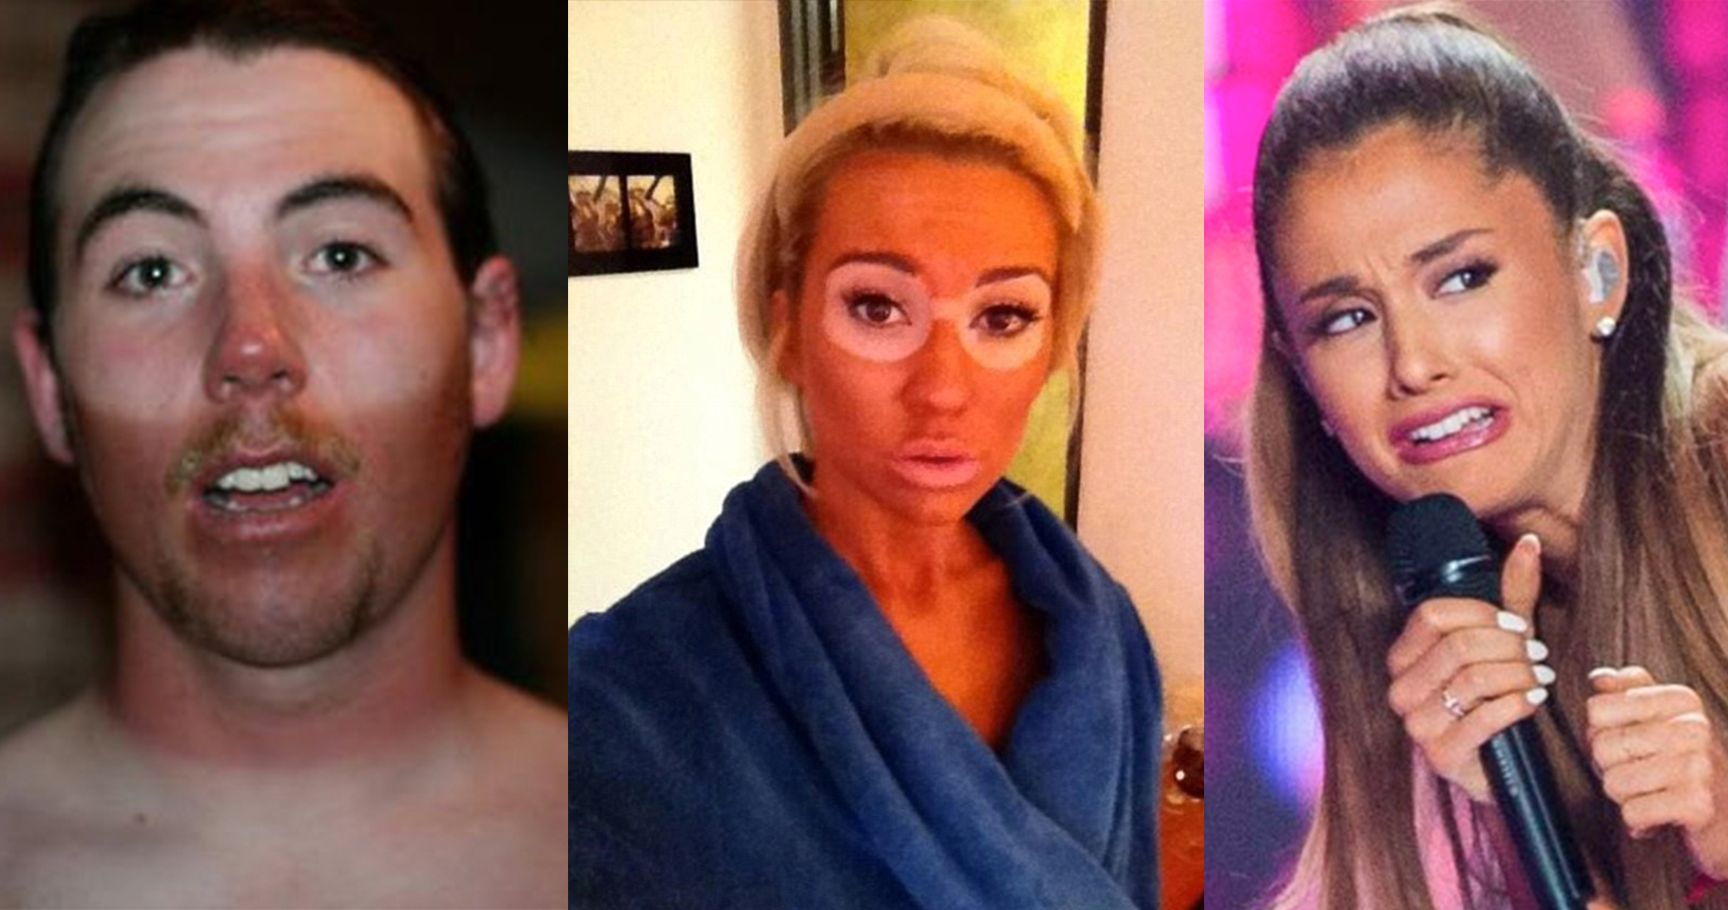 15 Horrifying Tans That No One Should Have Inflicted On Themselves